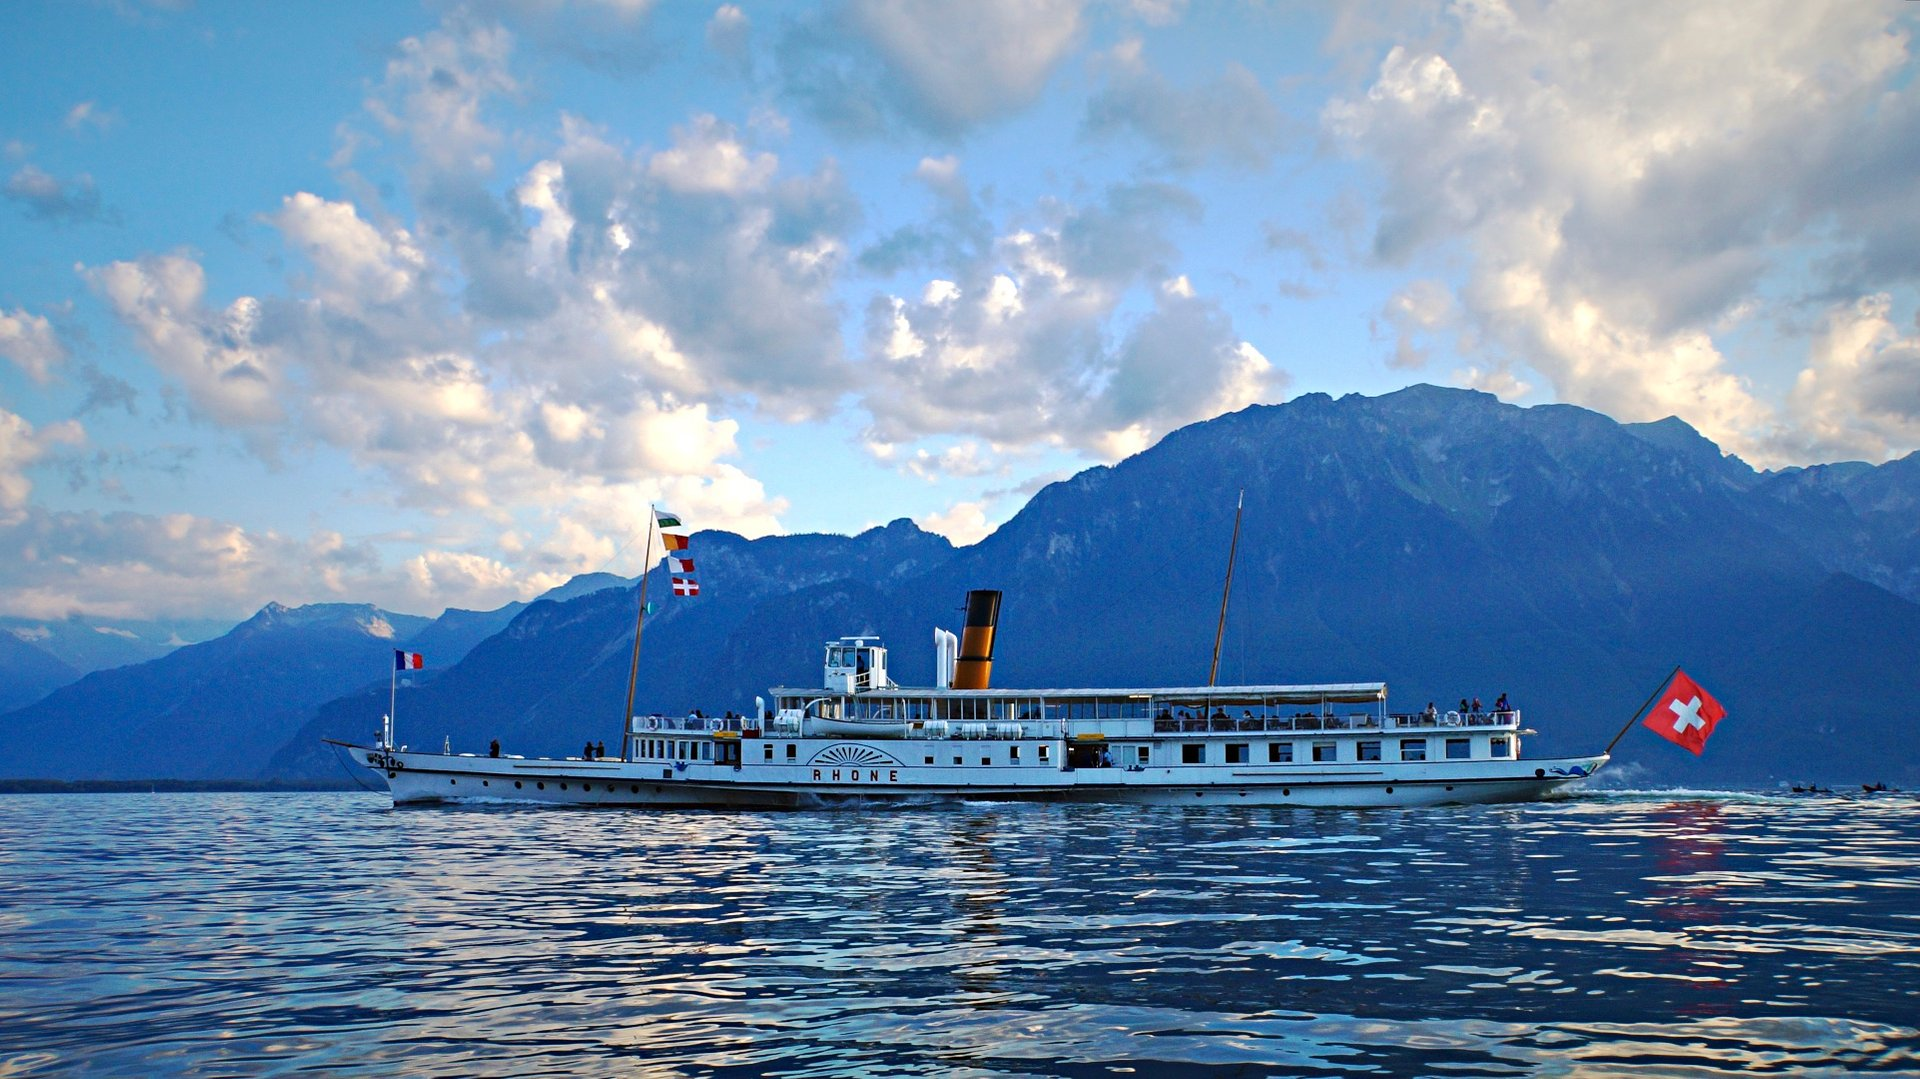 Lac Léman or Lake Geneva Cruise in Switzerland 2019 - Best Time